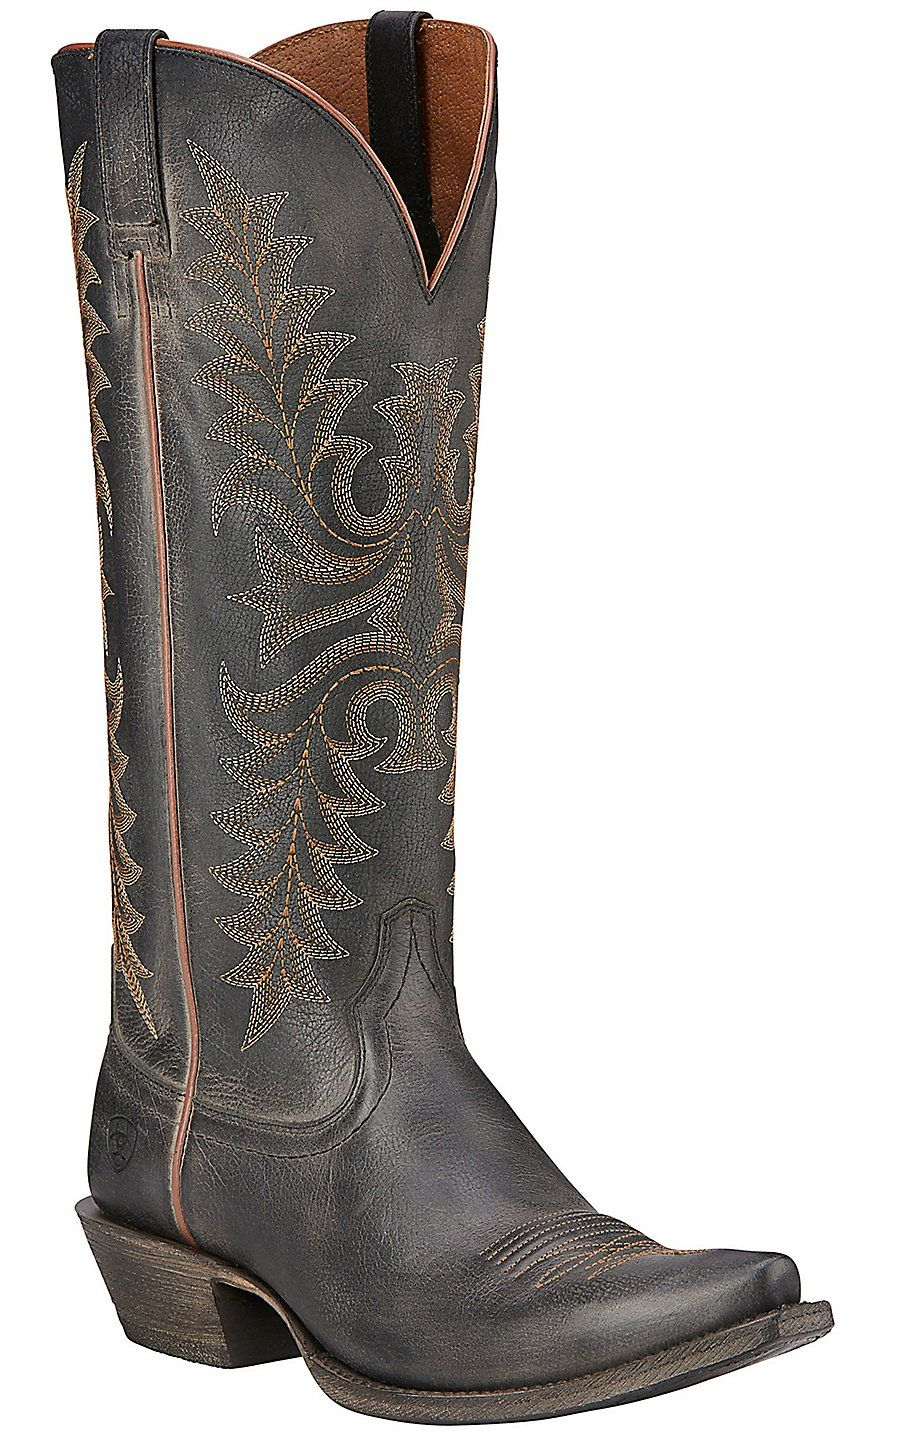 Snip toe cowgirl boots